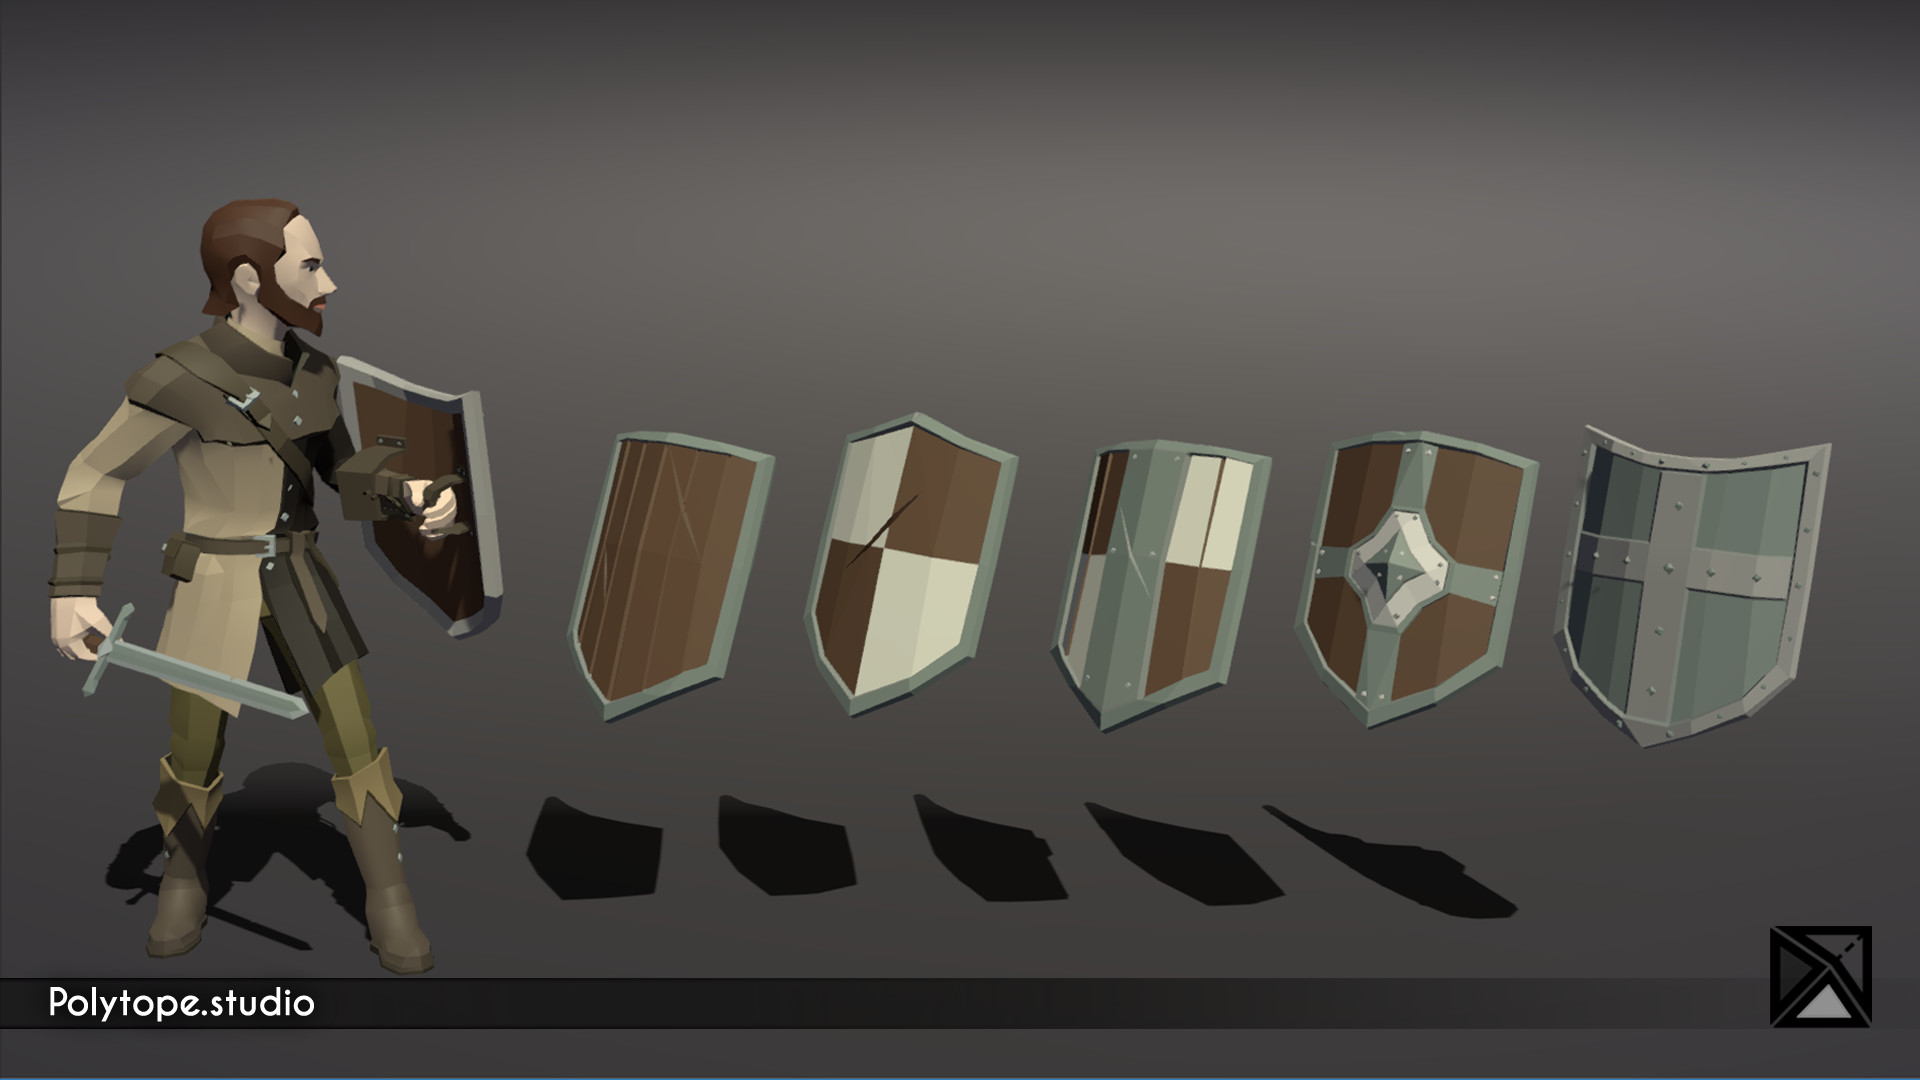 Polytope studio pt medieval lowpoly weapons shield heater